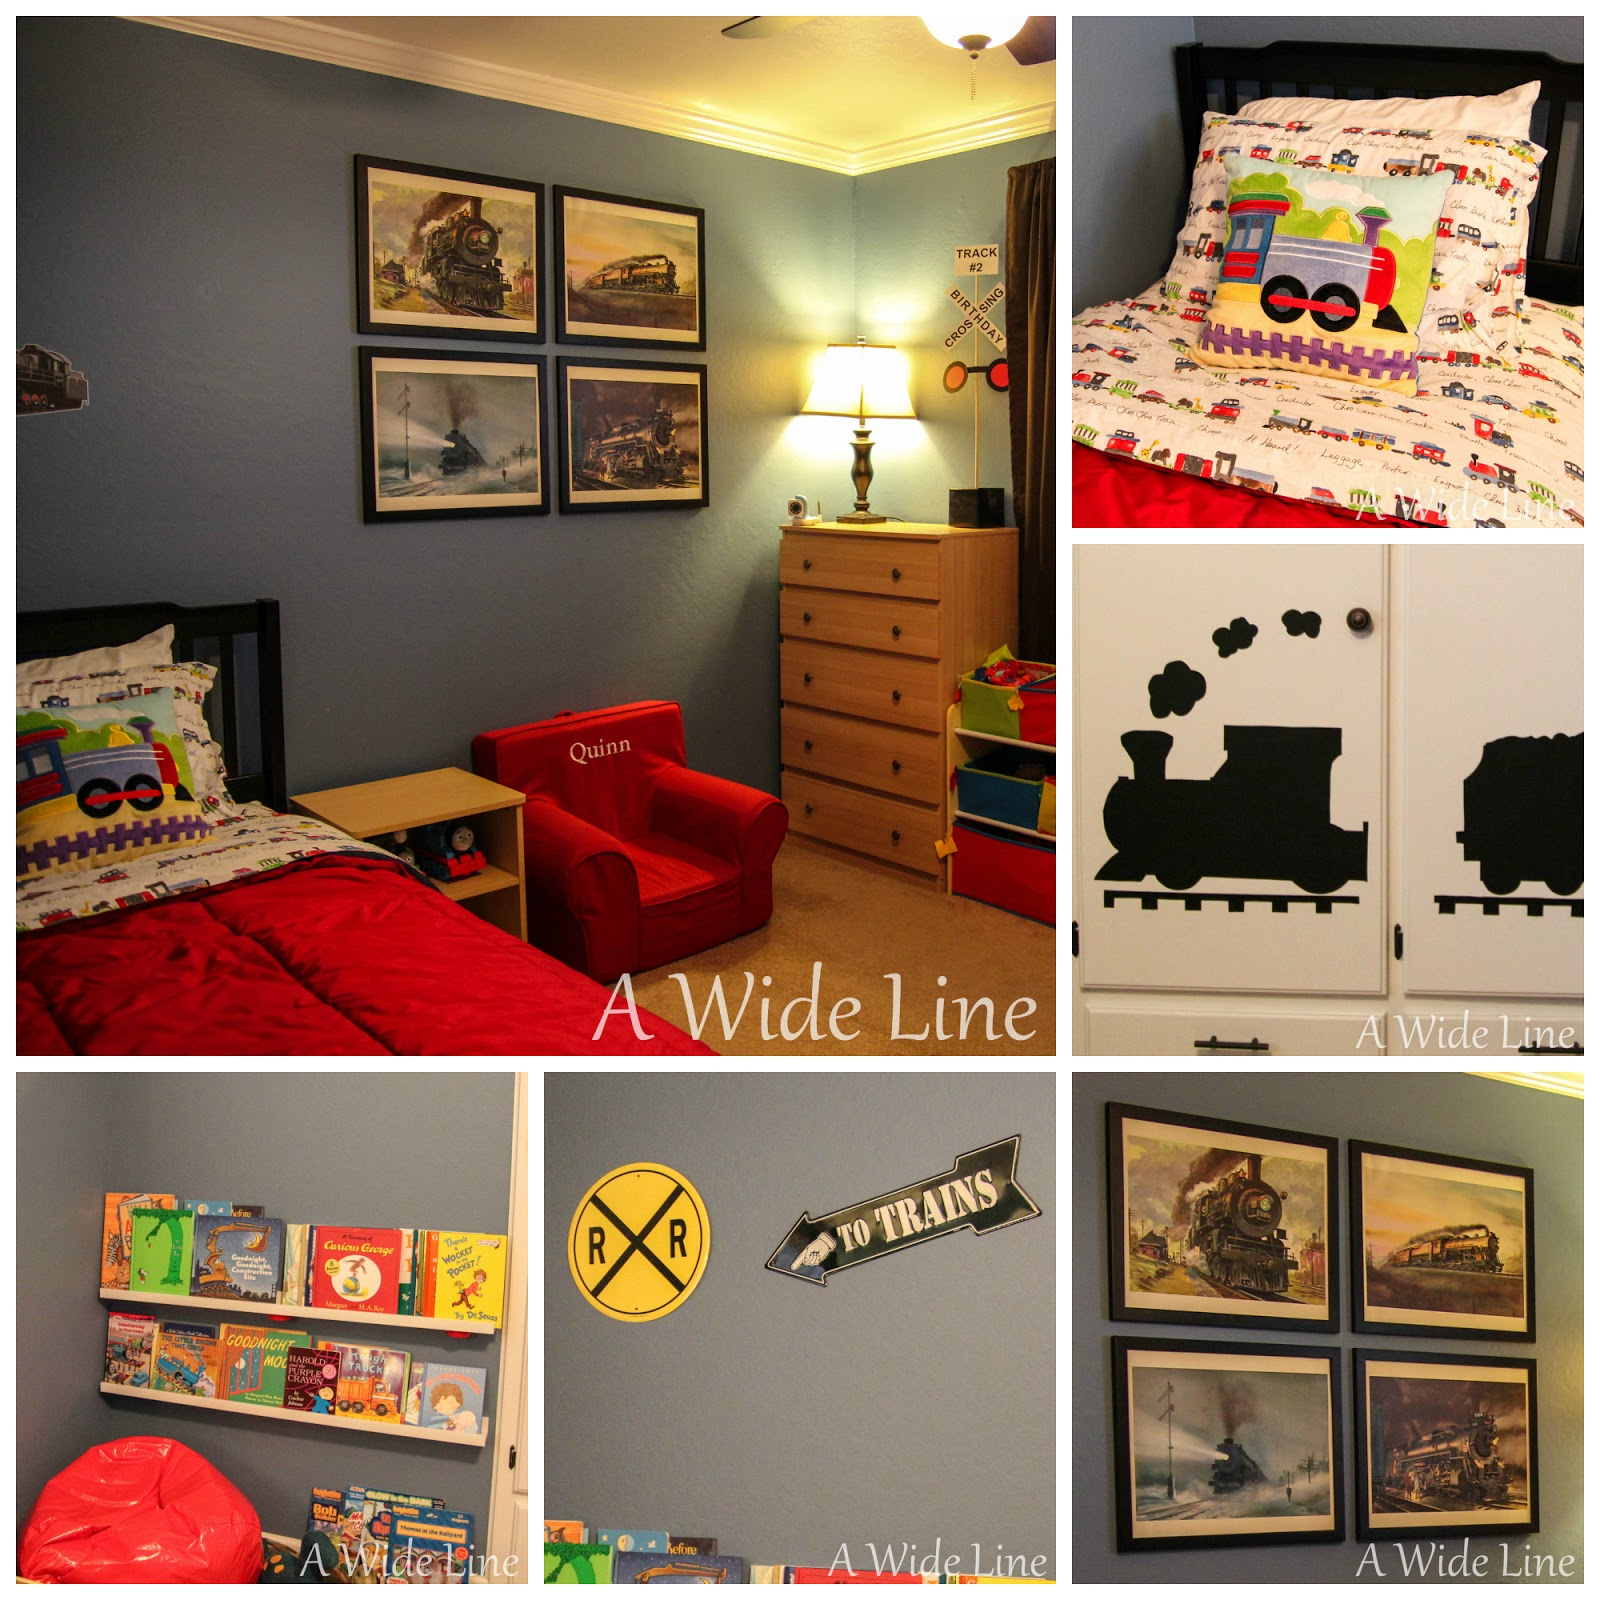 Toddler Boy Bedroom Ideas: A Wide Line: From Nursery To Big Boy Bedroom: Trains